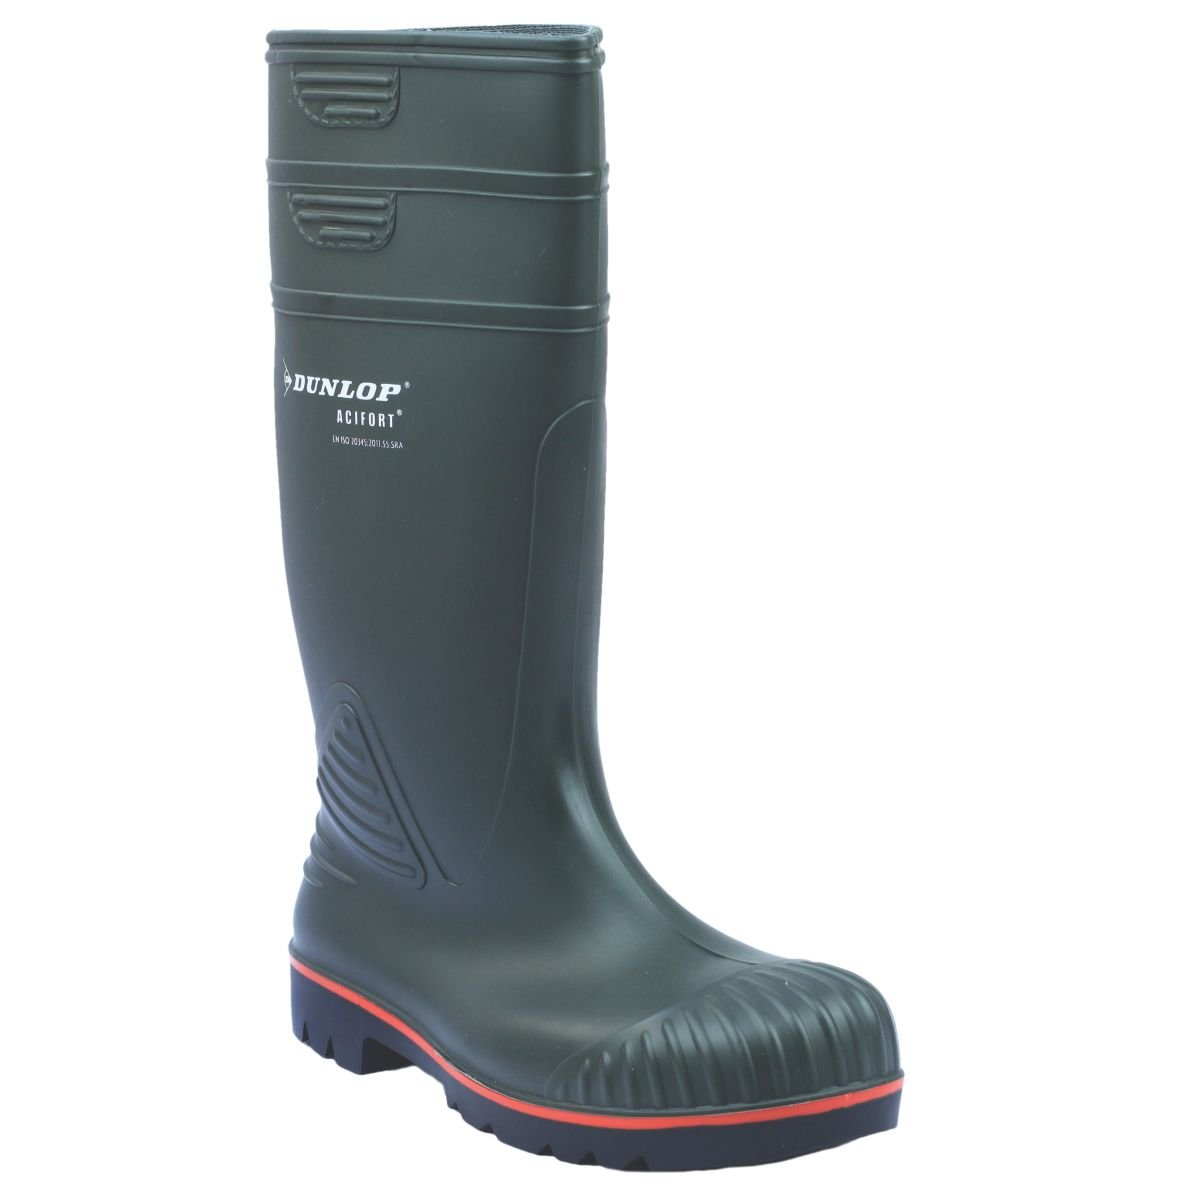 Dunlop Unisex Acifort Heavy Duty Full Safety Wellington Boot